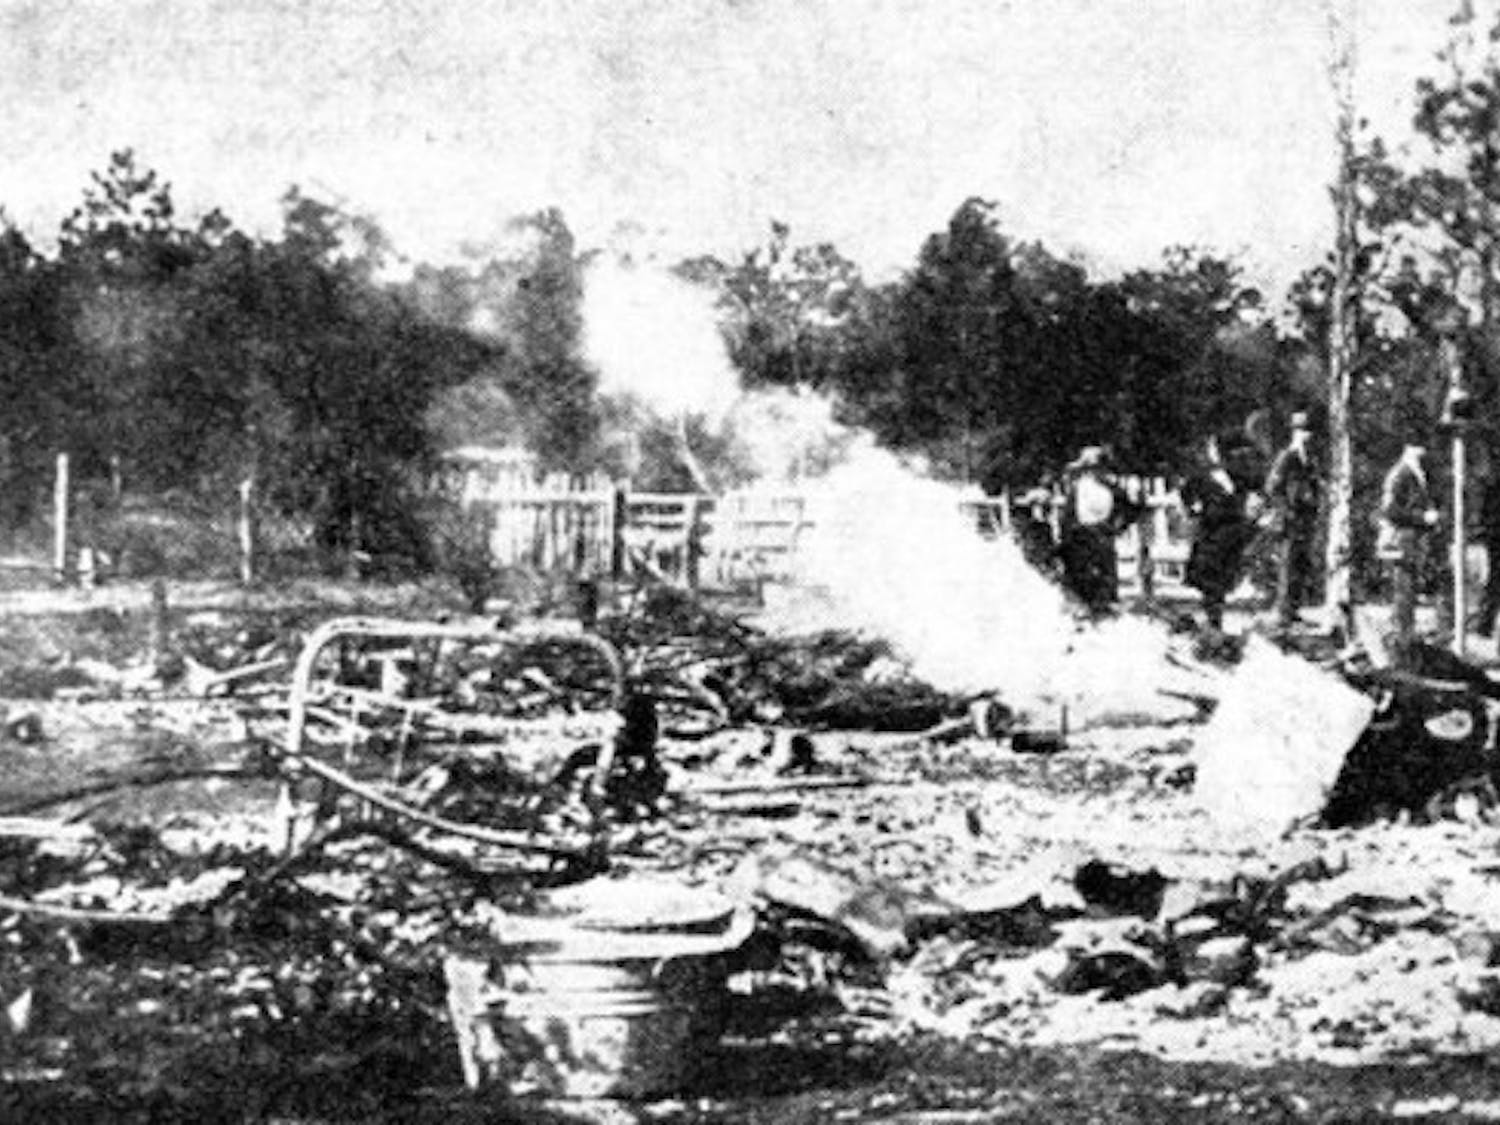 The ruins of a home destroyed during the Rosewood attack, avenging the alleged murder of Fannie Taylor.